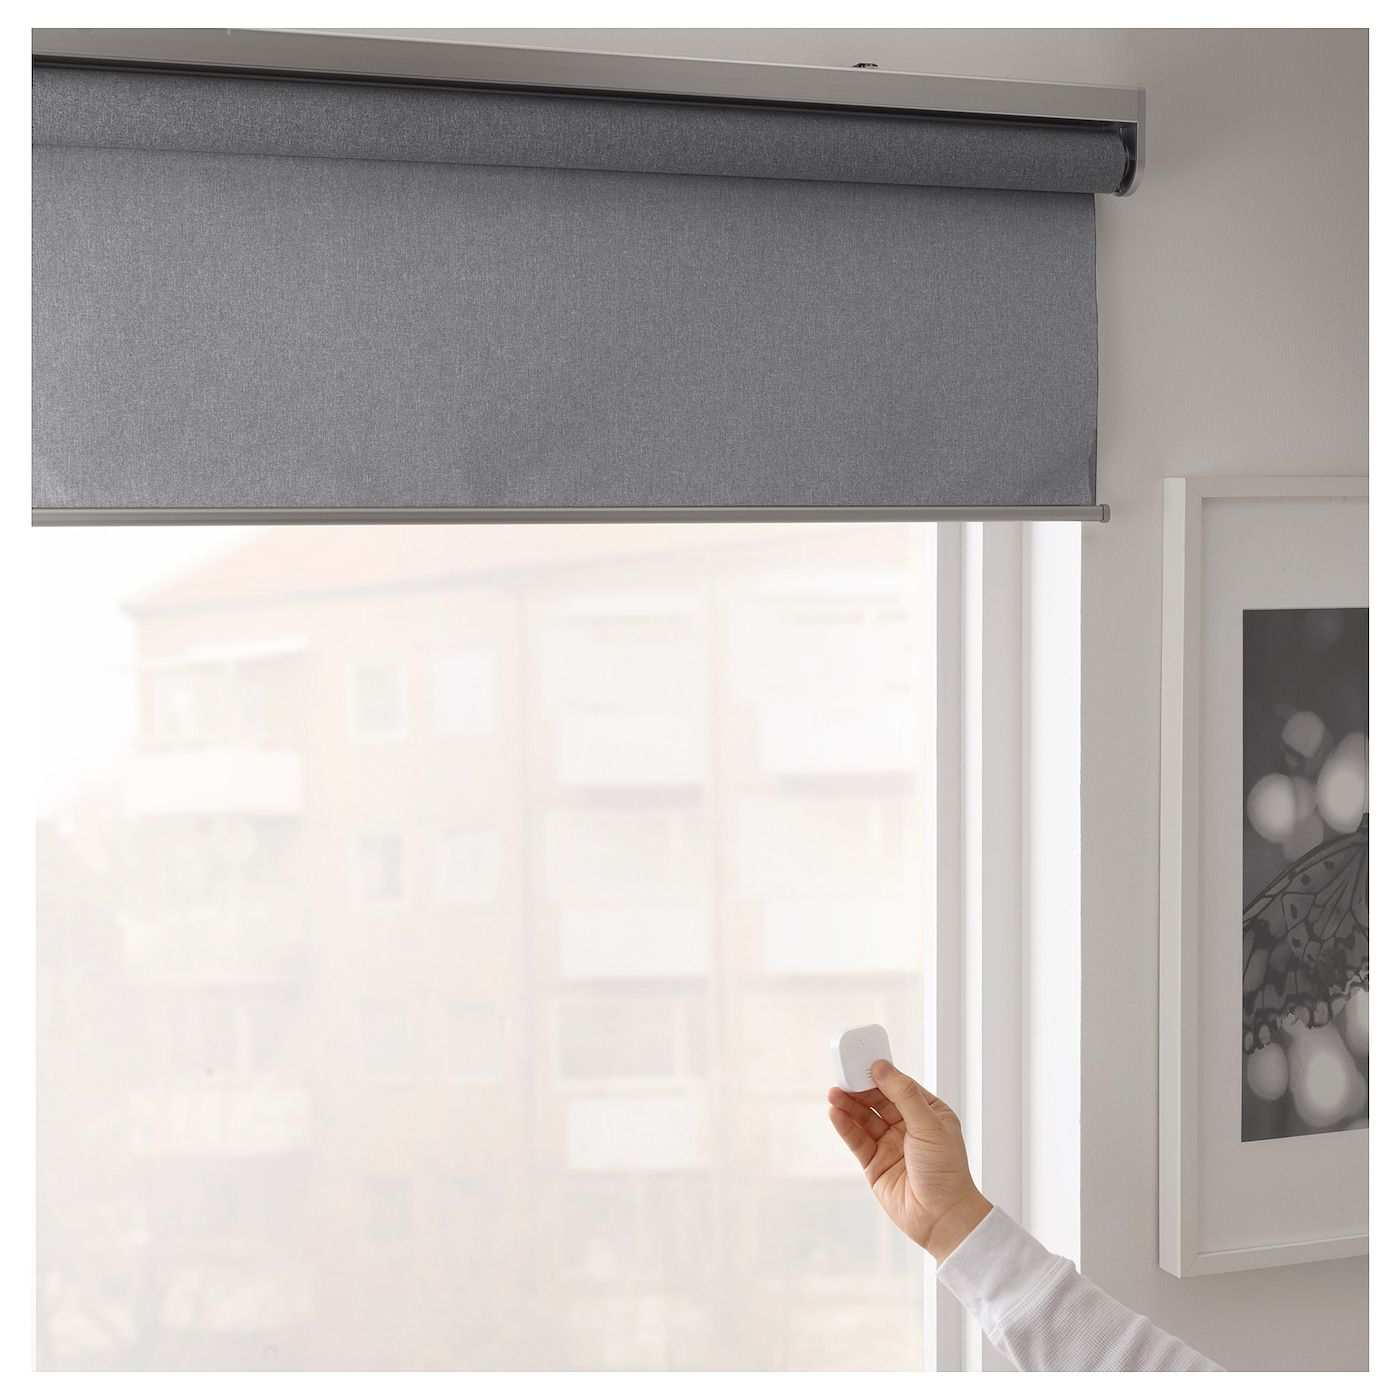 Fyrtur Blackout Roller Blind Wireless Battery Operated Gray